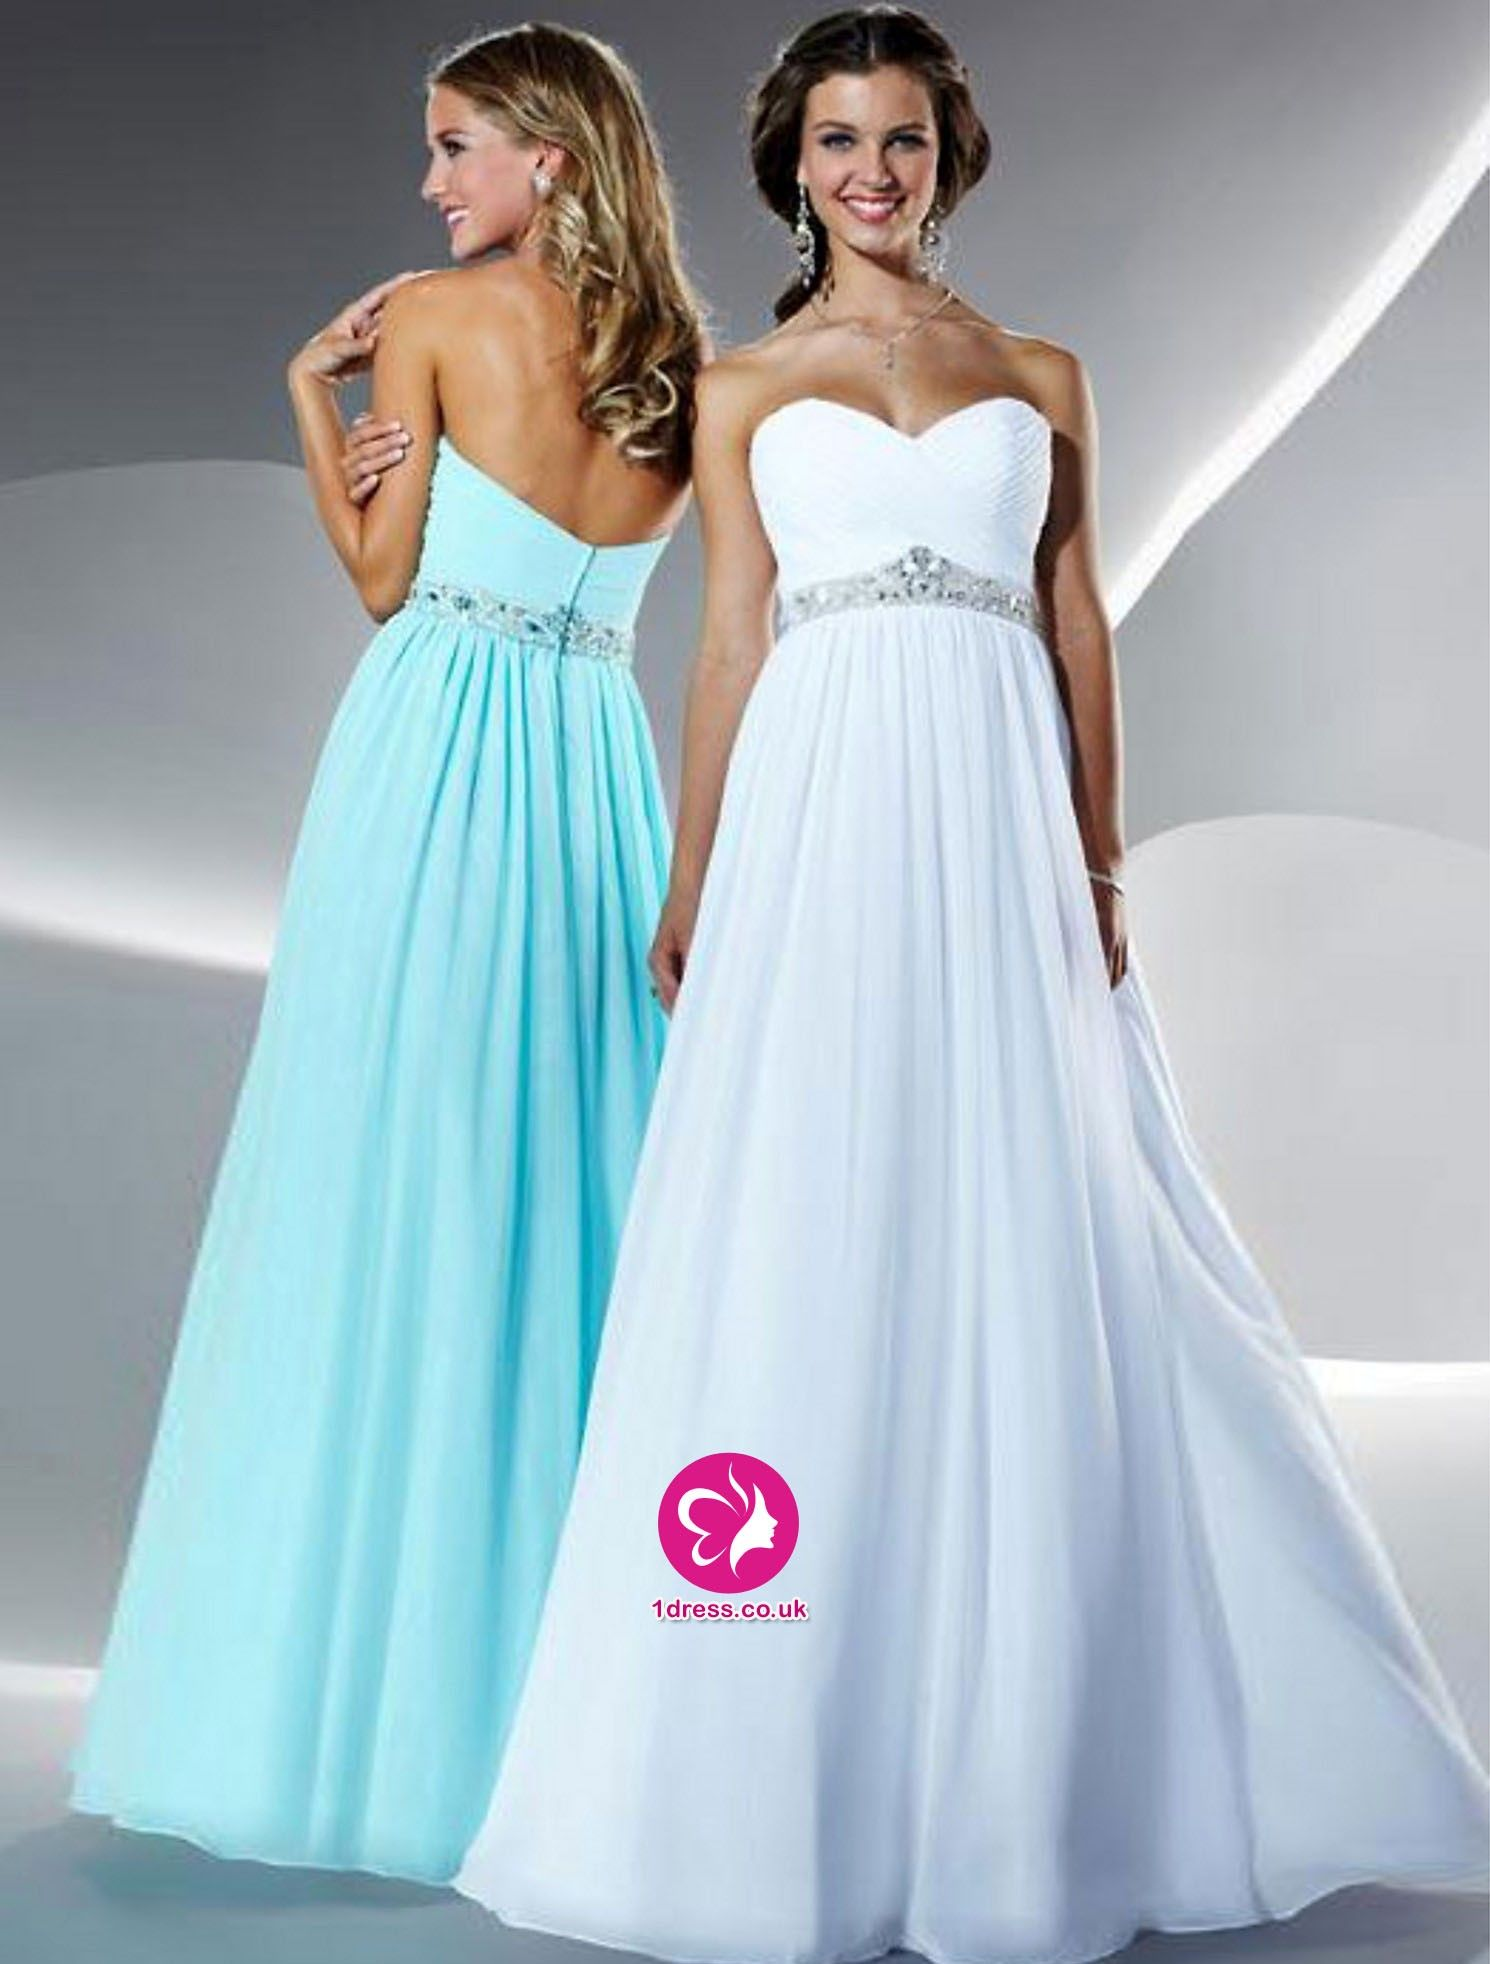 T k maxx ladies evening dresses johannesburg | Wedding dress ...